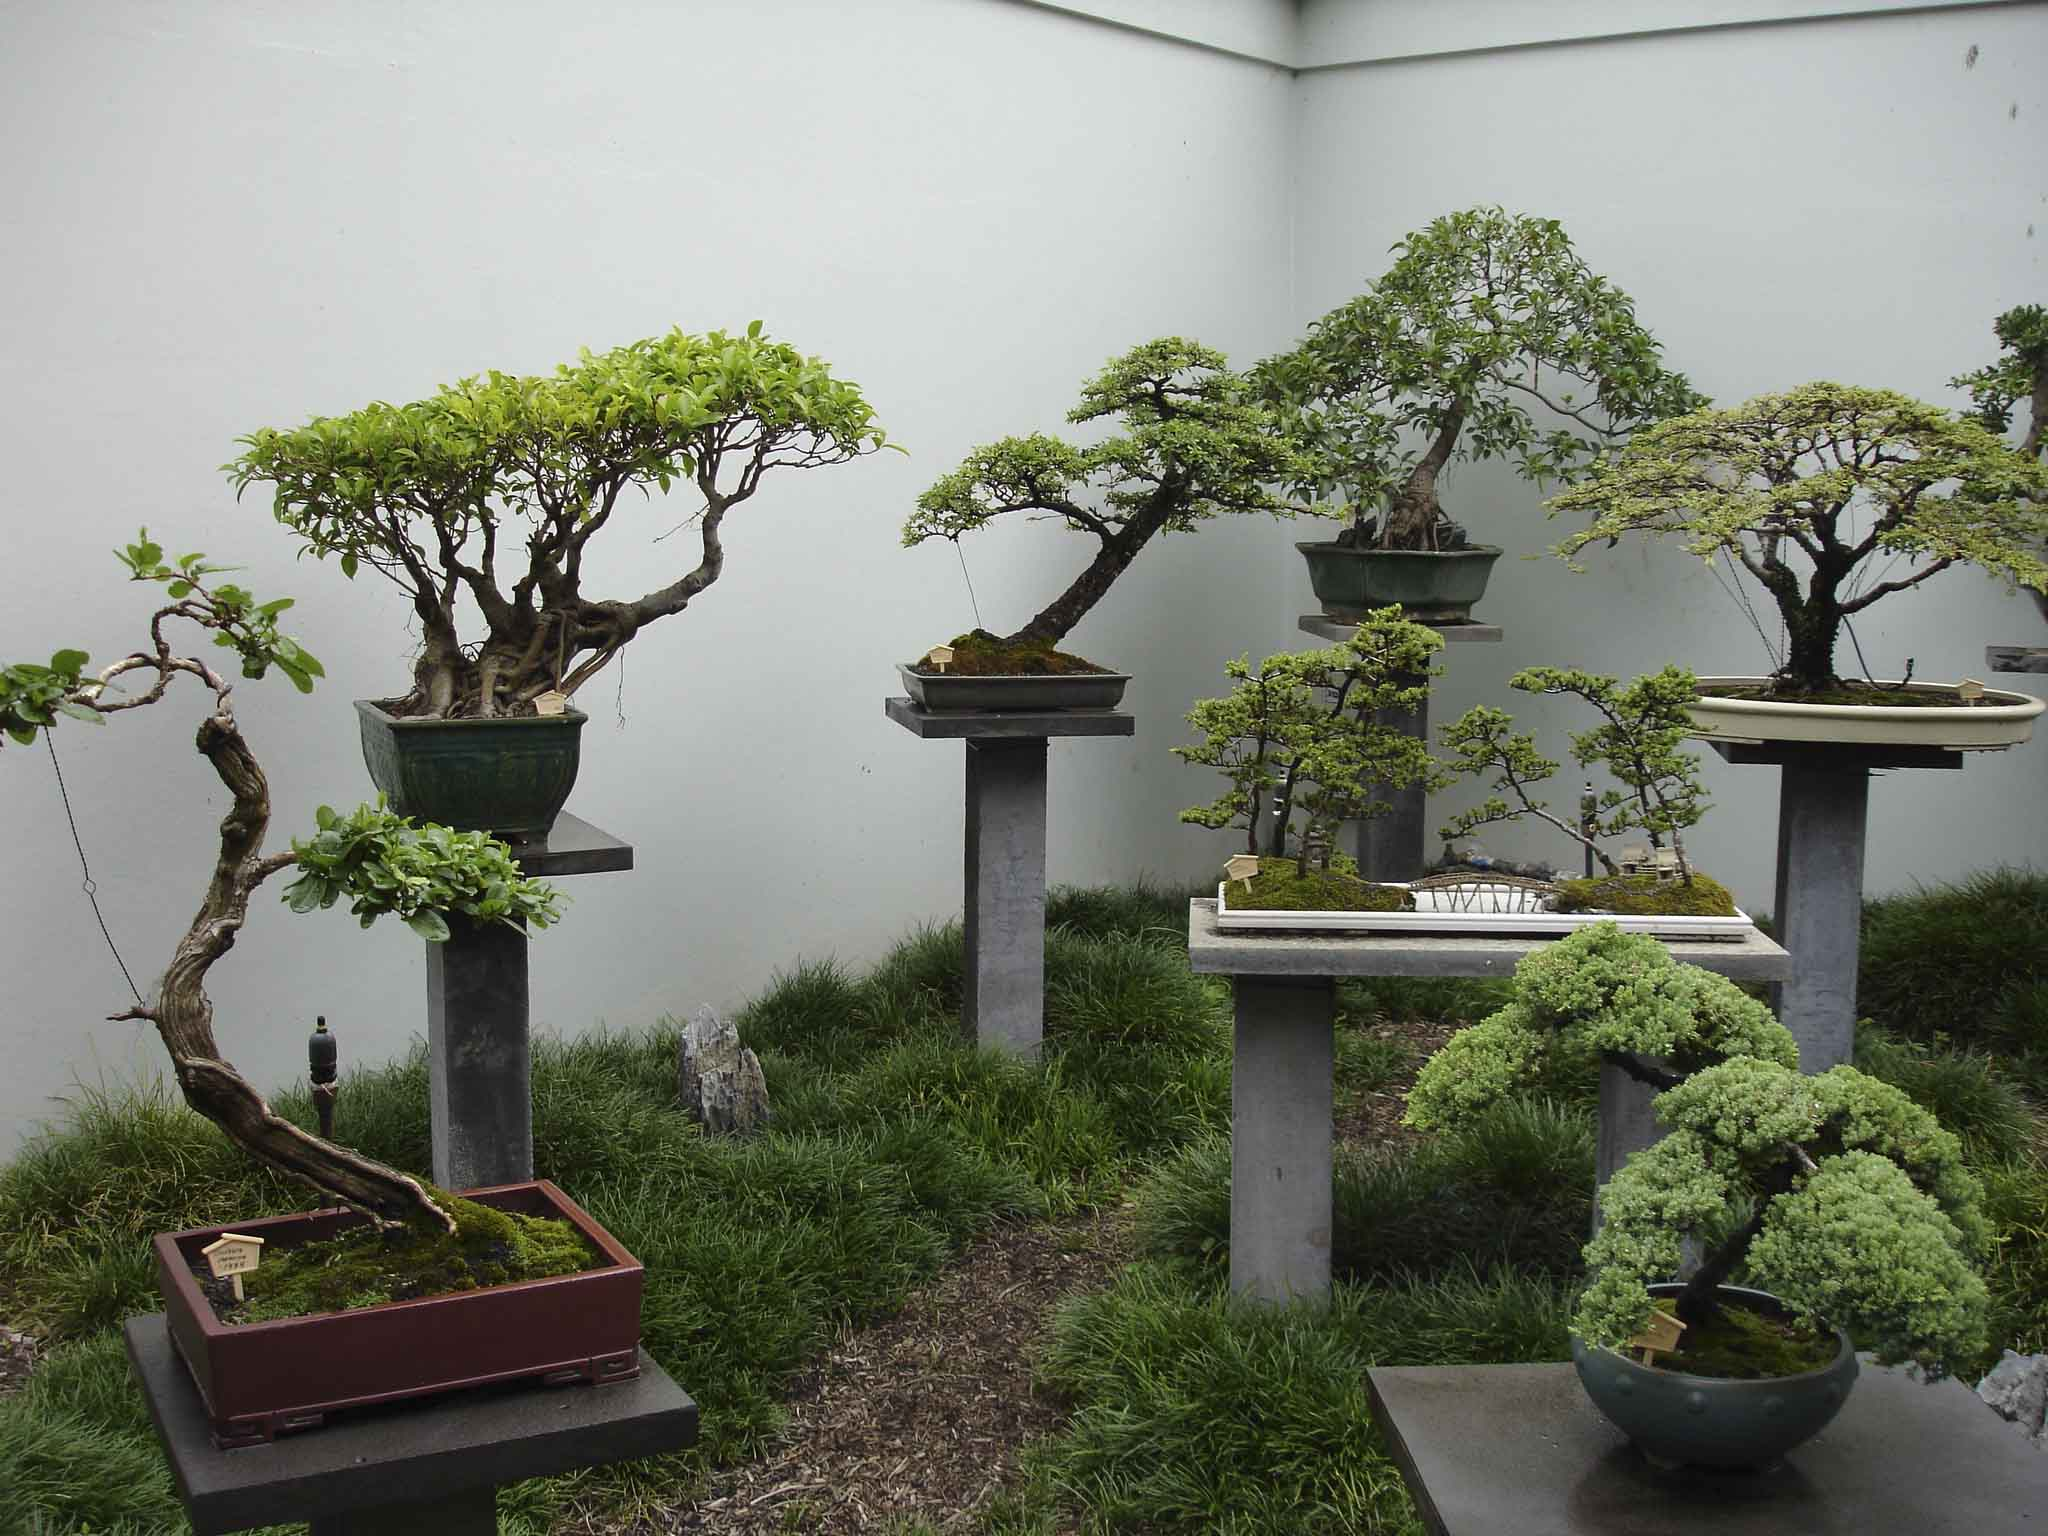 Bonsai historia fotos taringa for Como cultivar bonsais